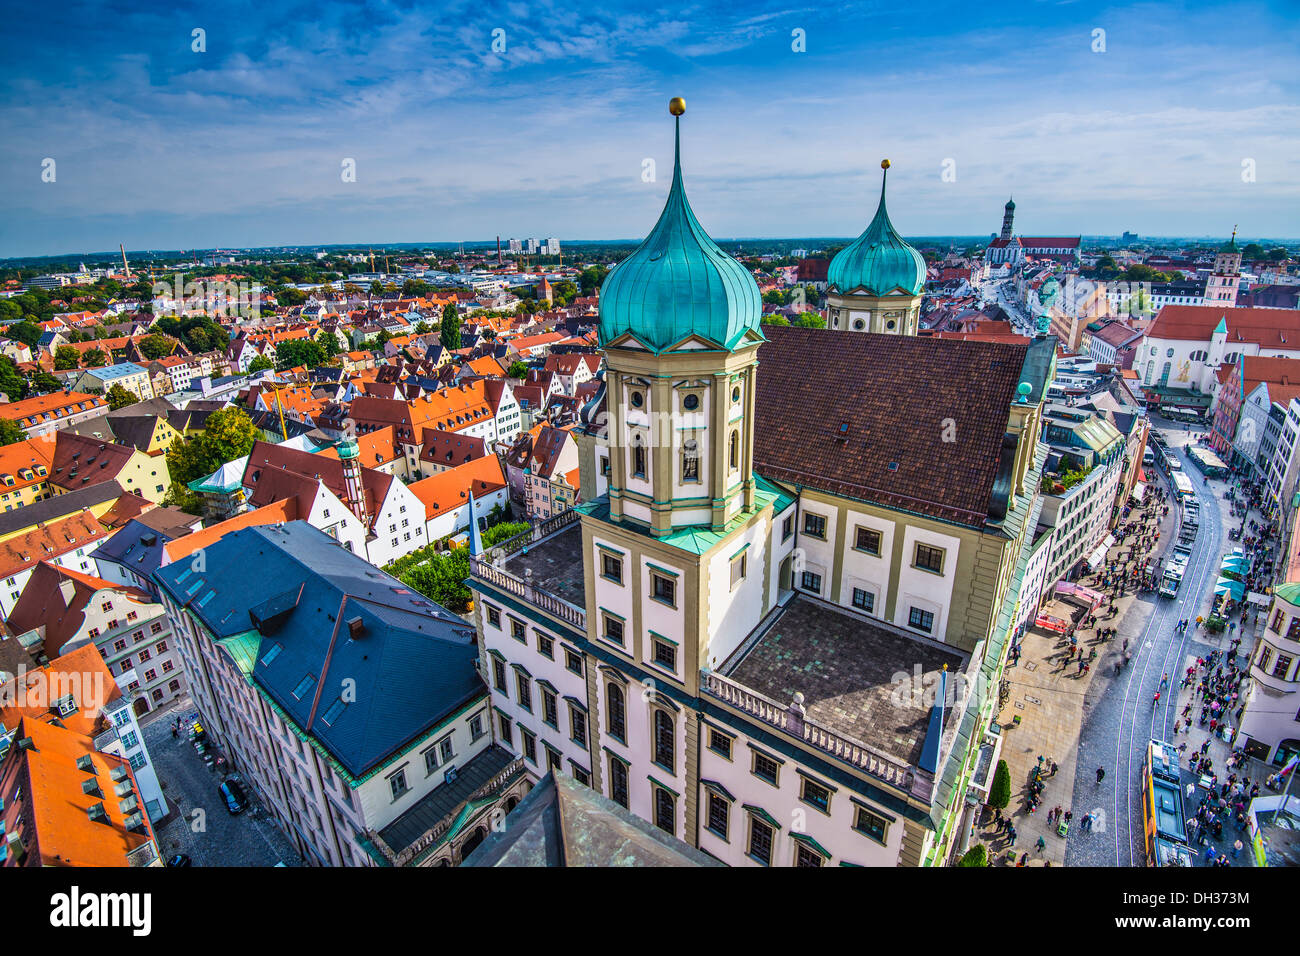 Augsburg Allemagne ancien paysage urbain. Photo Stock